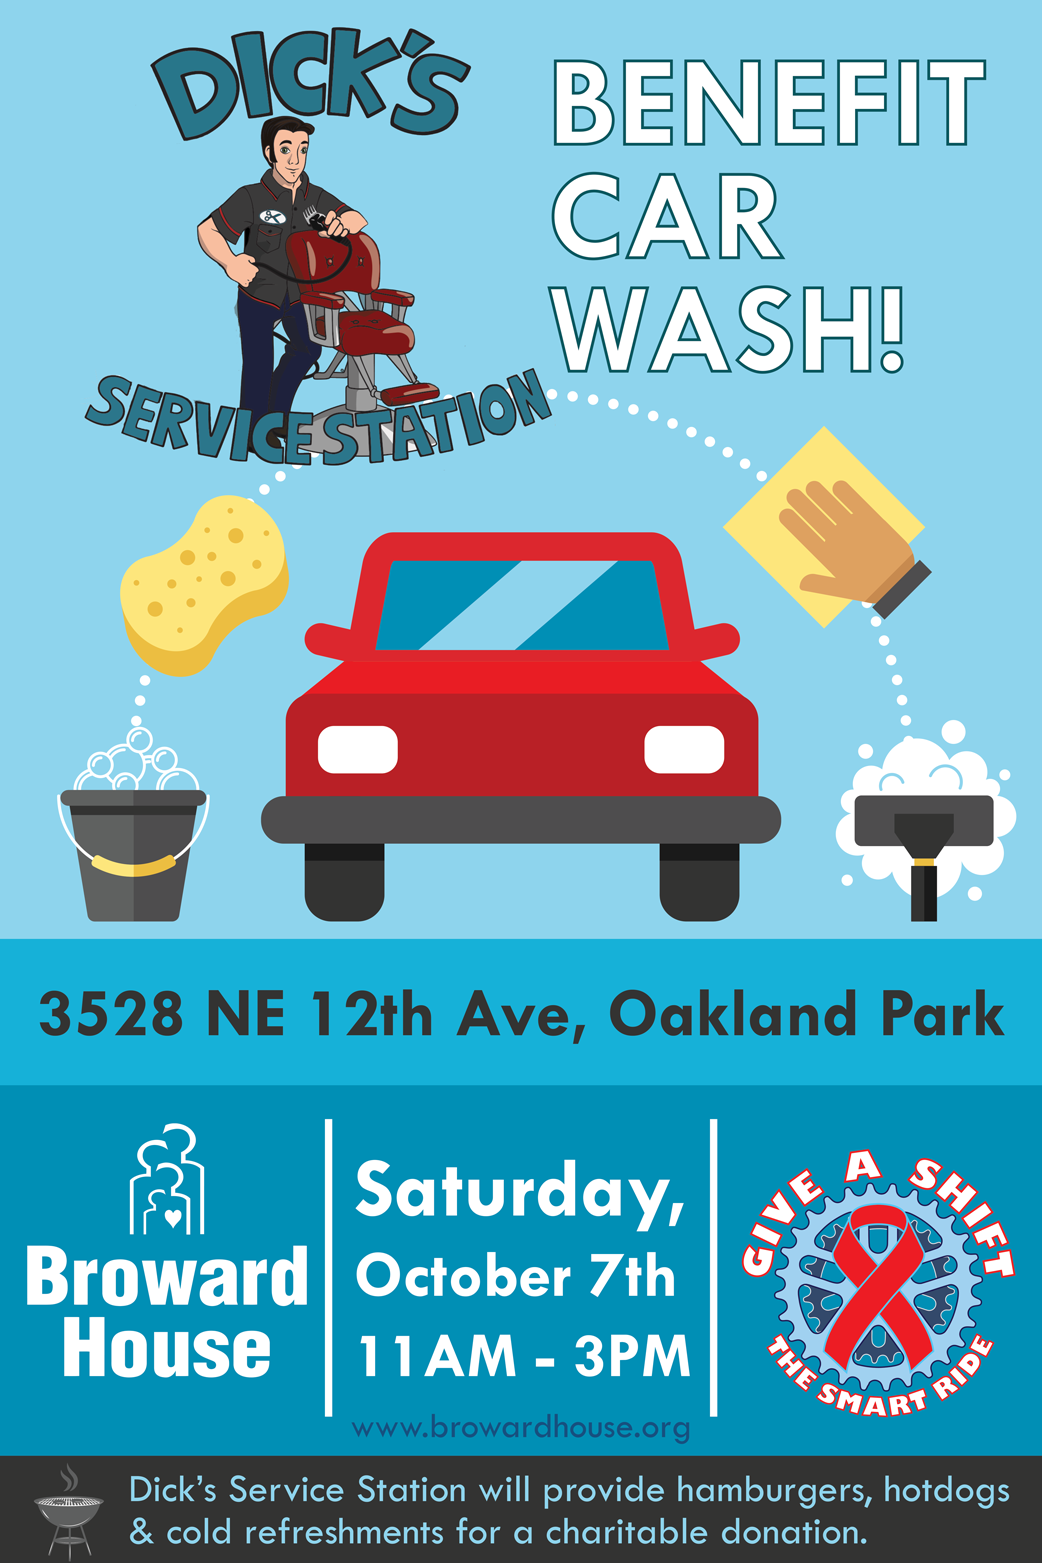 Smart Car Wash >> Benefit Car Wash for Team Give a Shift and the SMART Ride